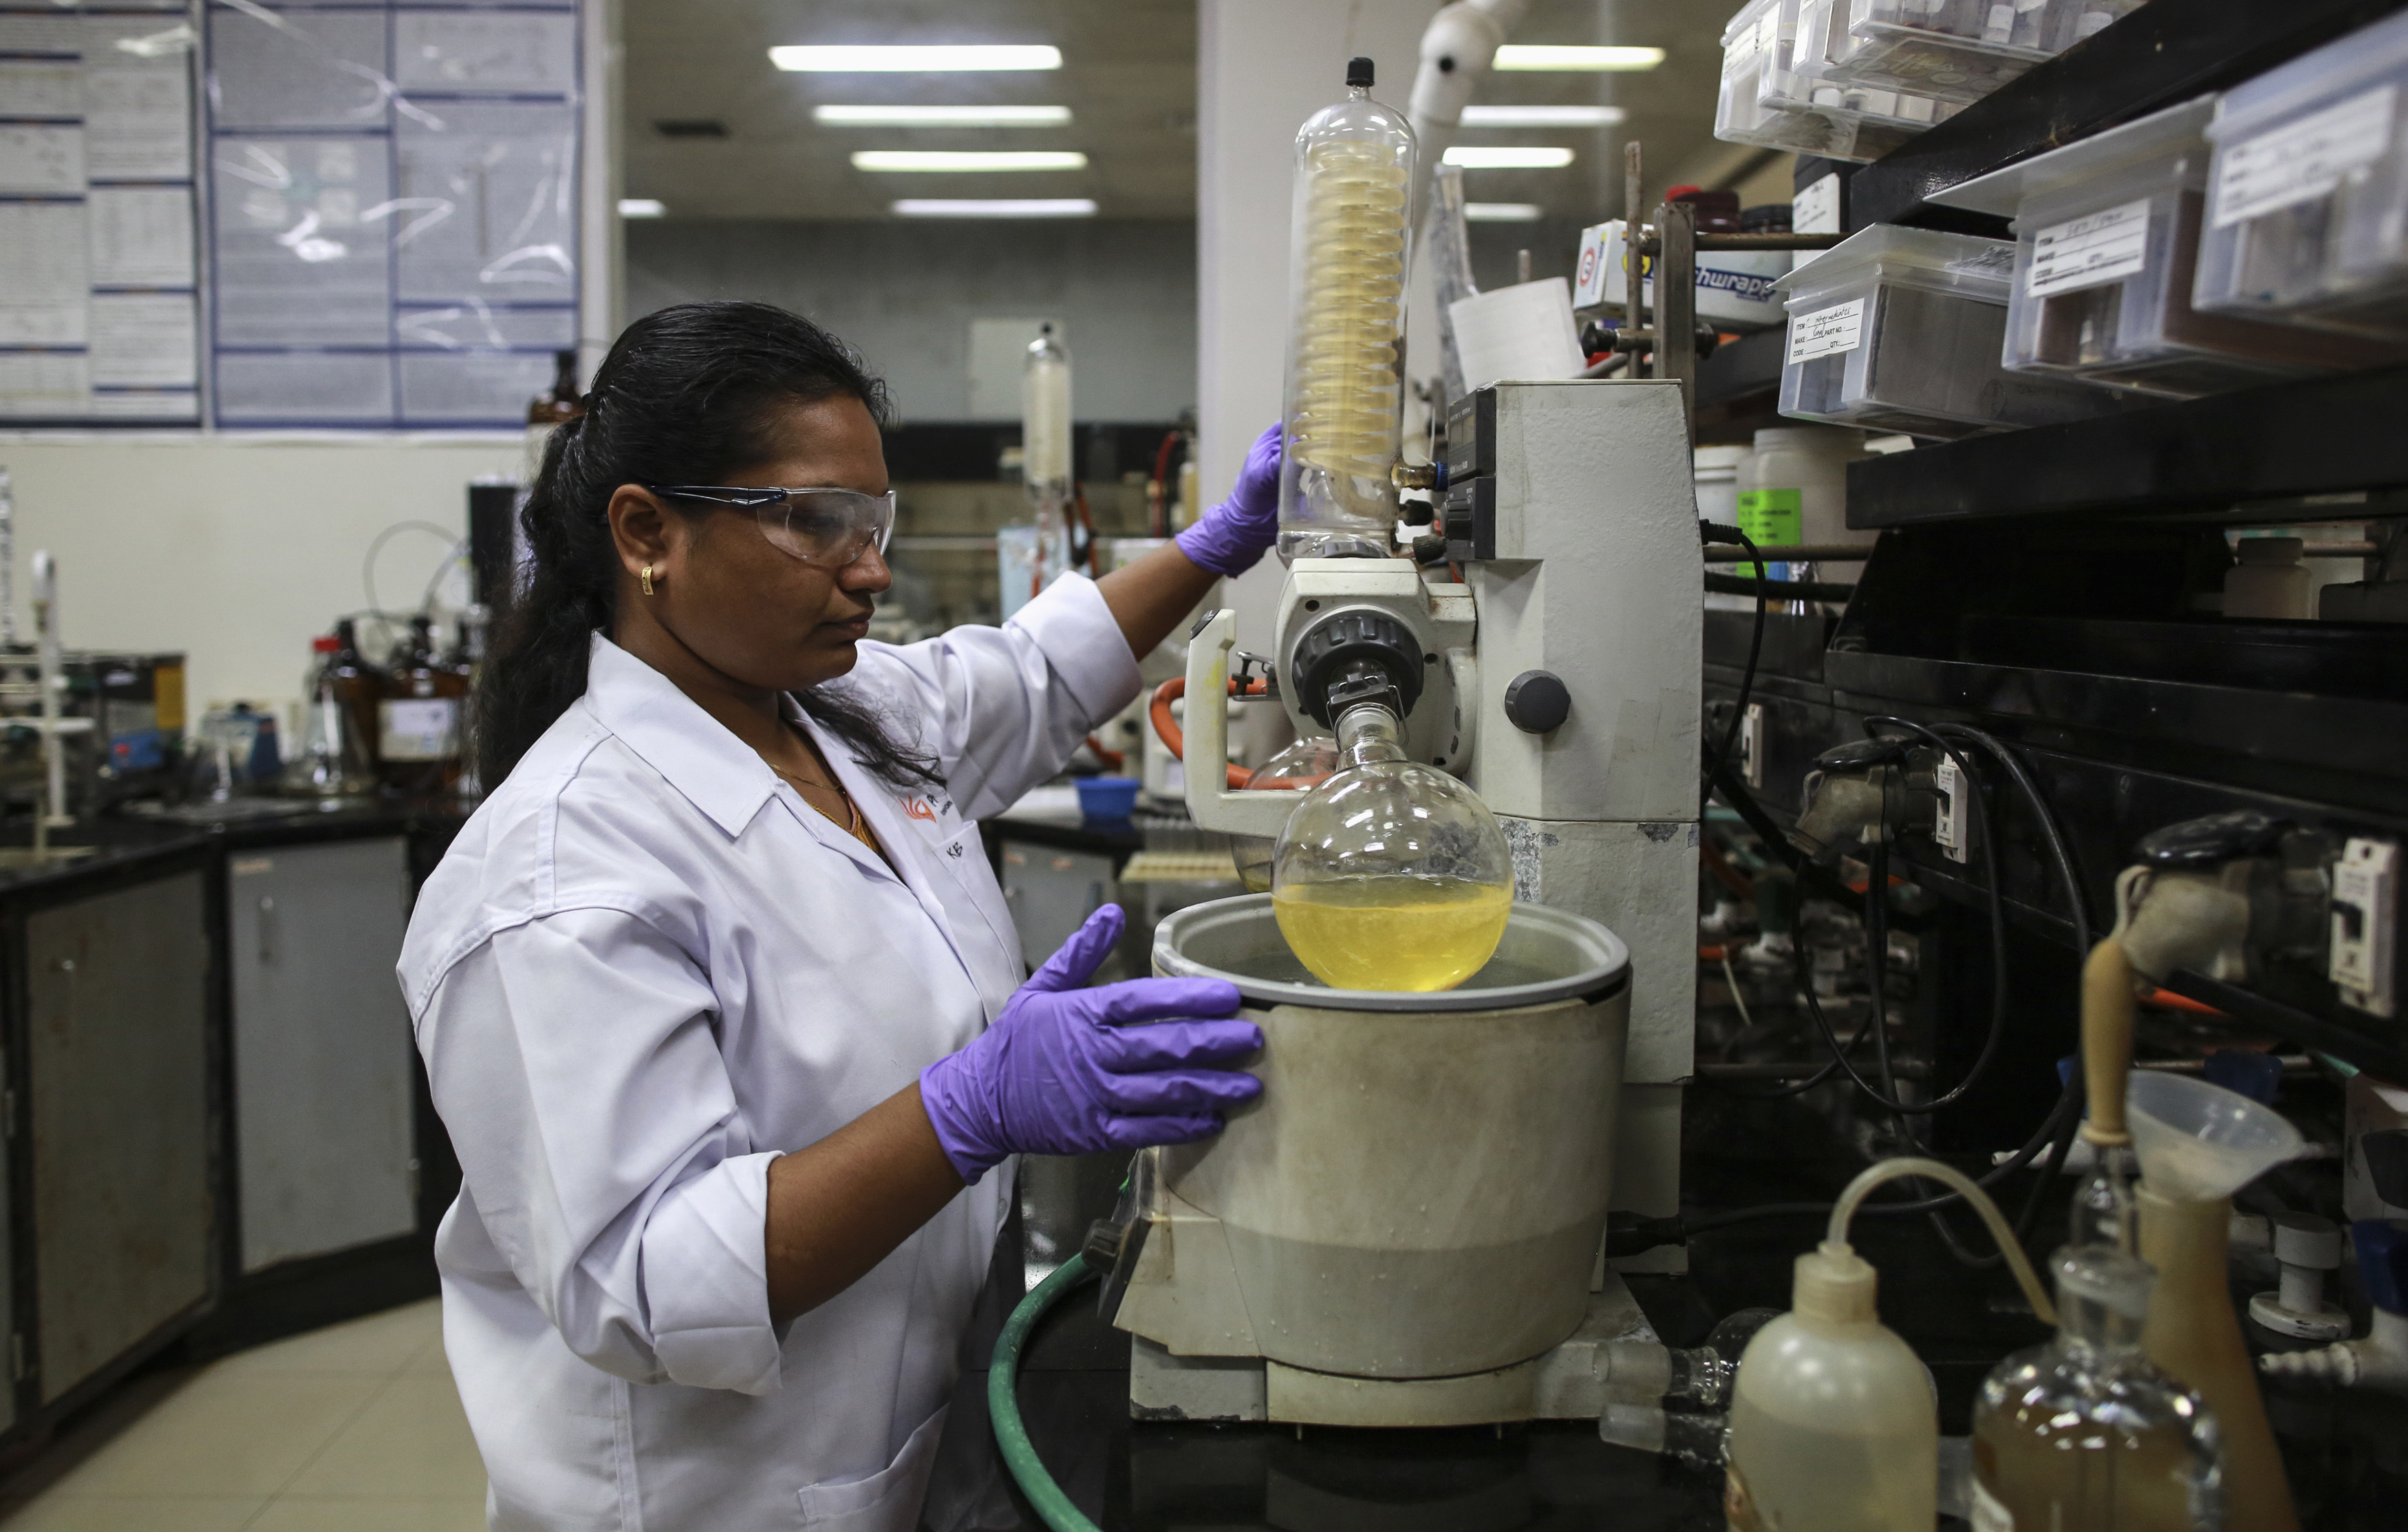 An employee works inside a laboratory at Piramal's Research Centre in Mumbai August 11, 2014. Indian drugmakers are fleeing a regulatory morass at home and moving some research and development to Europe and the United States as they try to boost margins by producing high-value drugs. Companies like Piramal Enterprises Ltd, Sun Pharmaceutical Industries Ltd and Lupin Ltd are investing millions of dollars and placing their future growth in foreign regulators' hands, as they seek to add more complex drugs to their product lines. Picture taken August 11, 2014. To match INDIA-PHARMACEUTICALS/RESEARCH/ REUTERS/Danish Siddiqui (INDIA - Tags: HEALTH BUSINESS DRUGS SOCIETY SCIENCE TECHNOLOGY) - RTR4460X